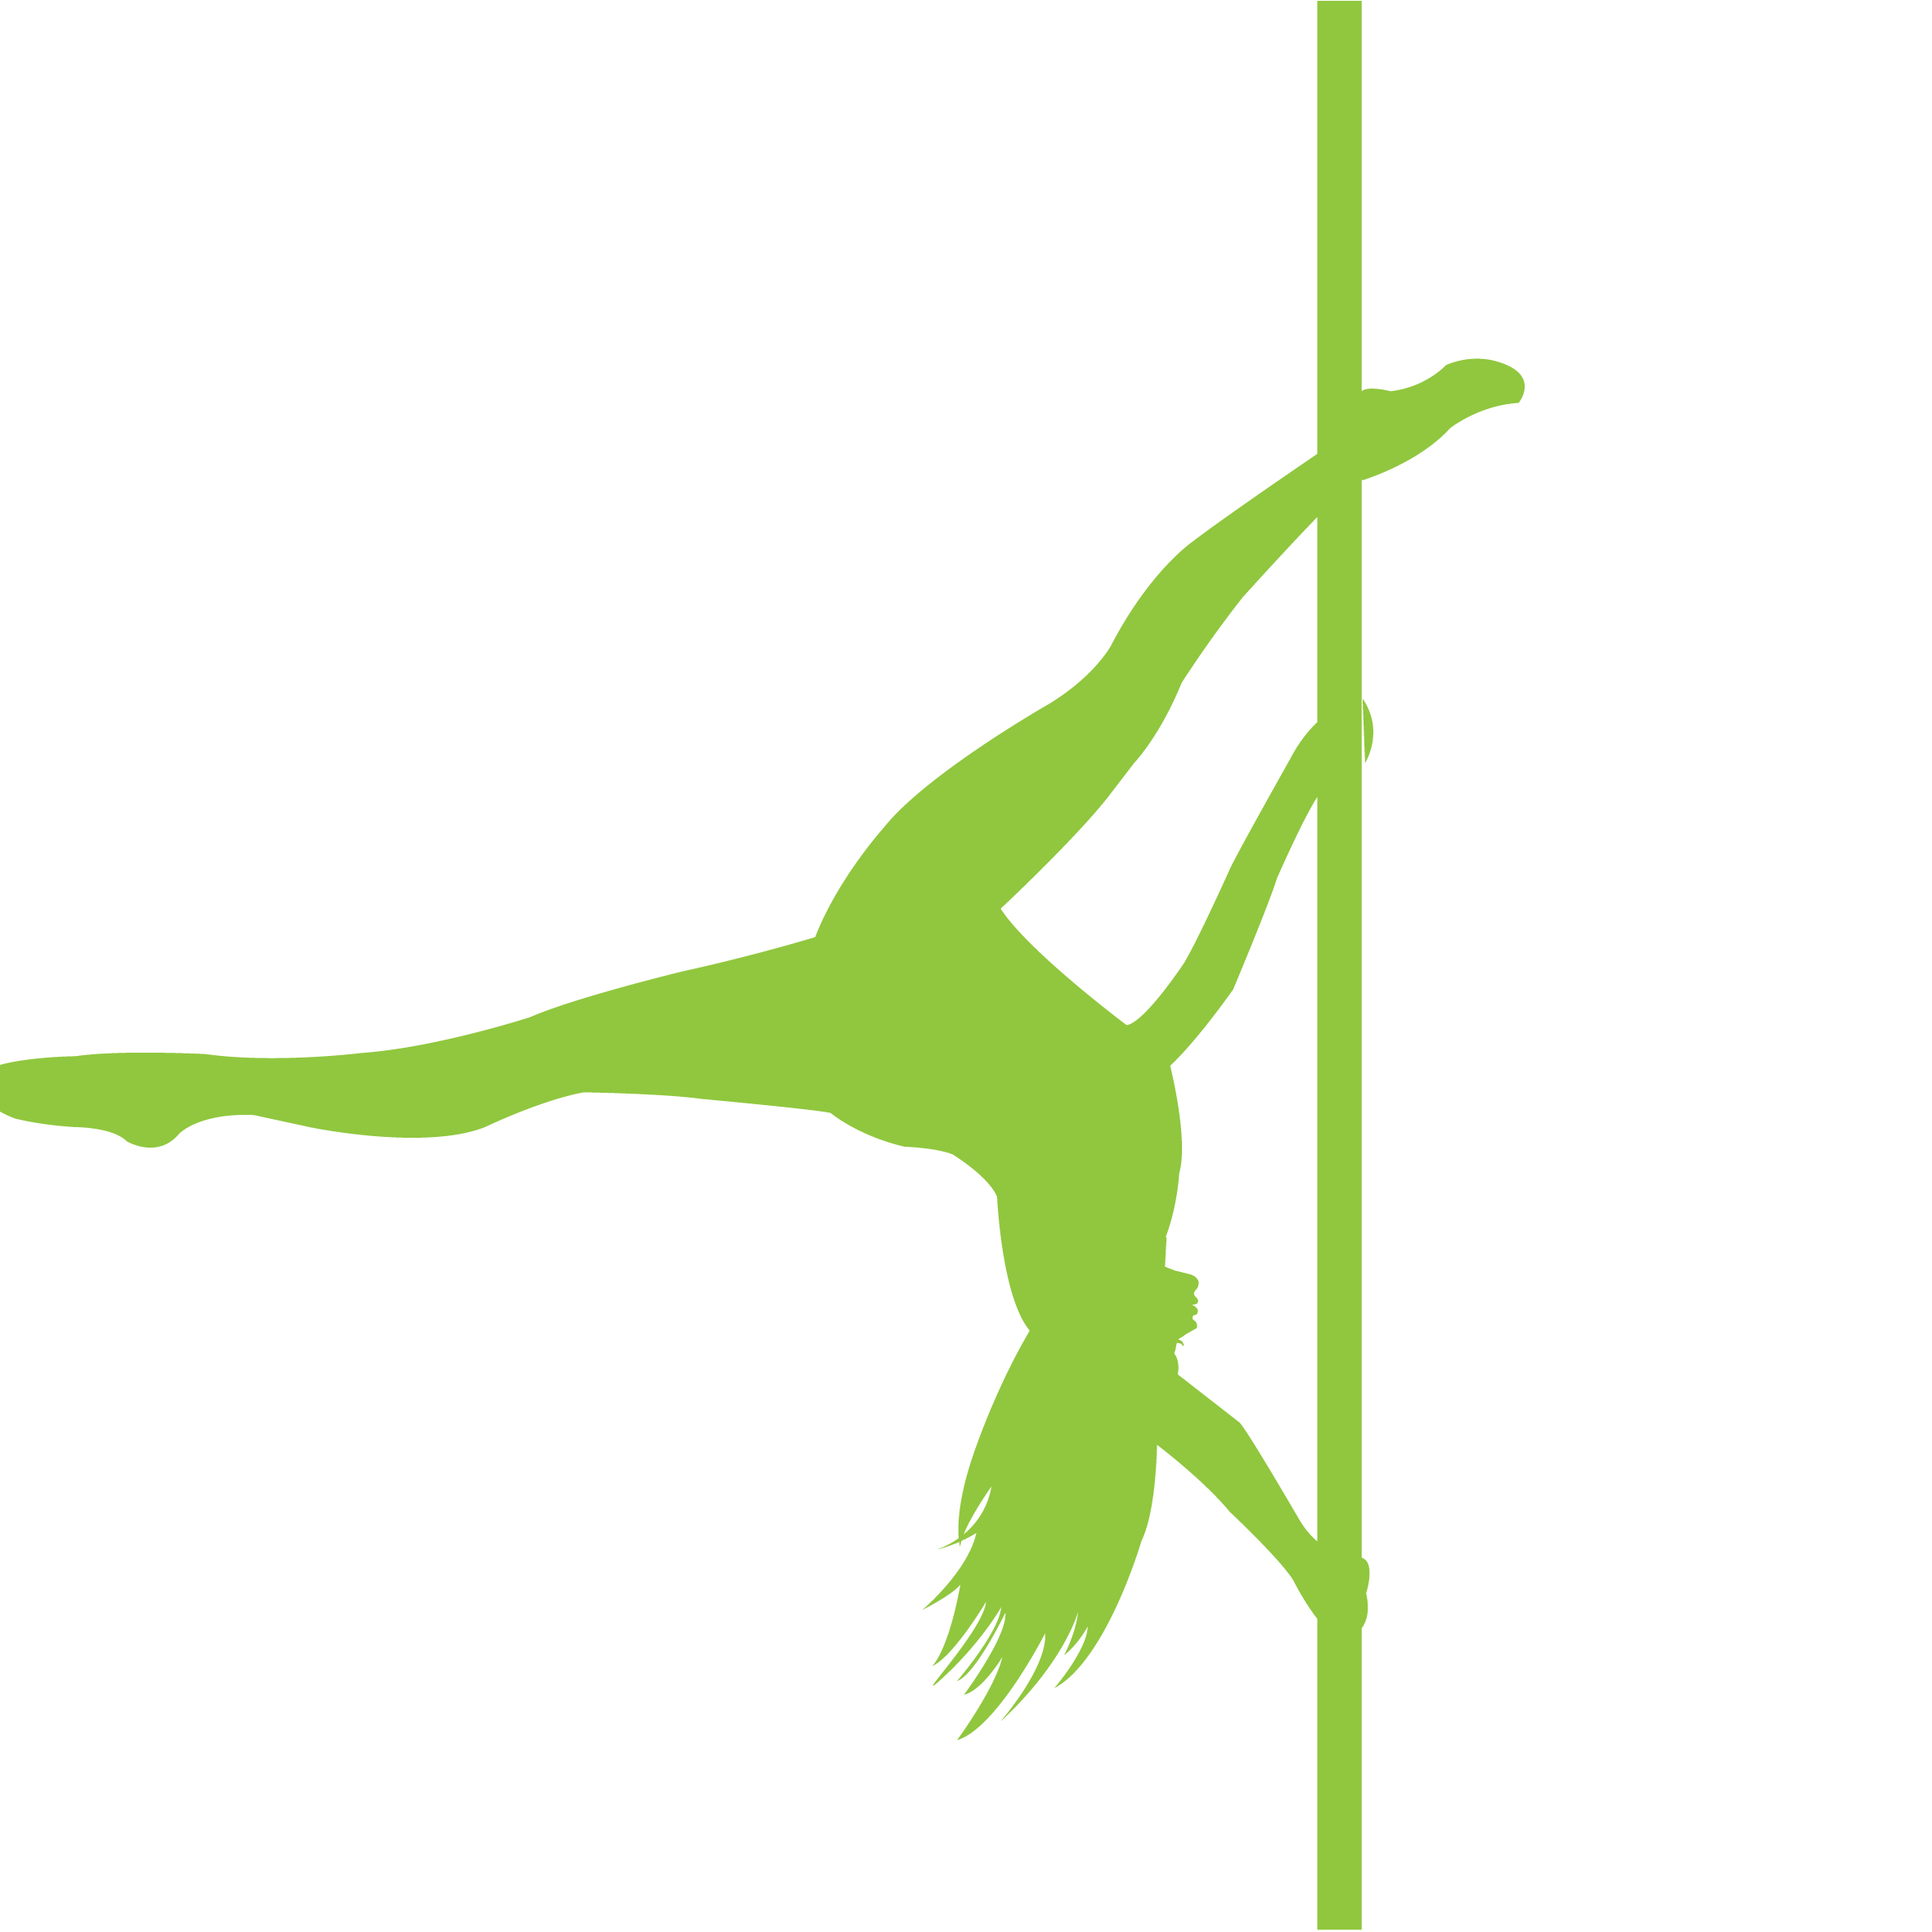 Pole Dancer PNG Image